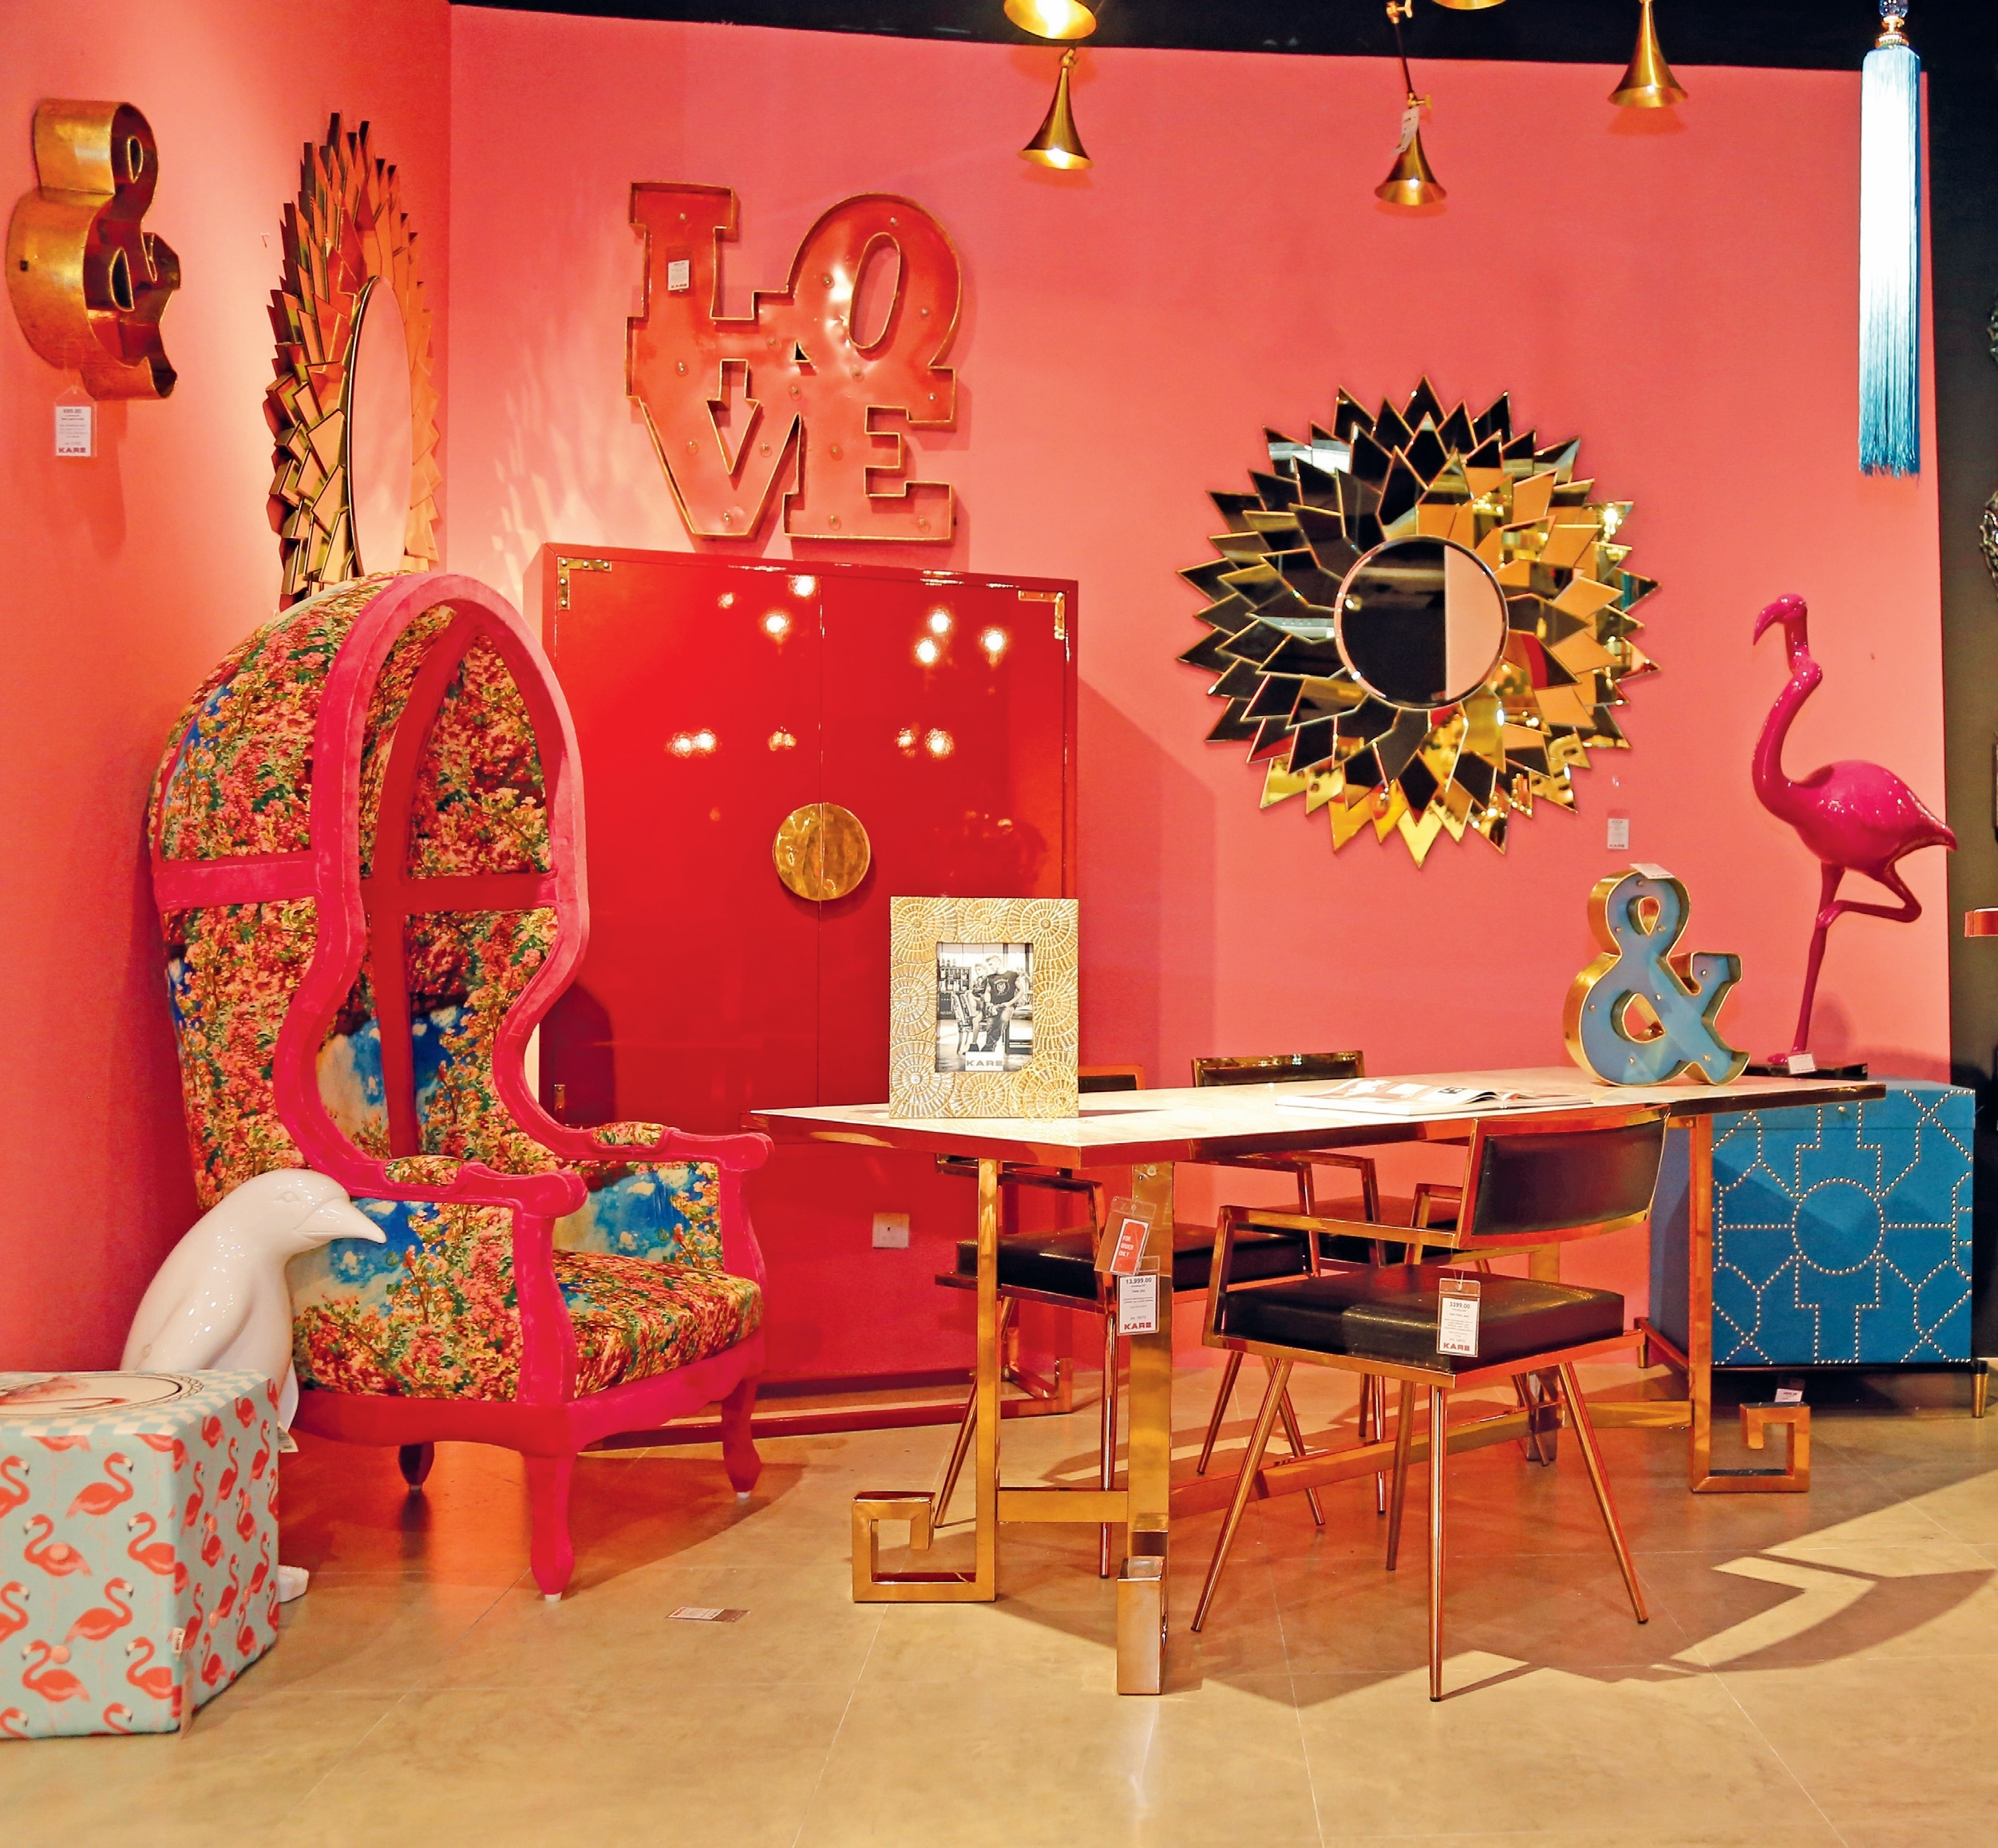 Home Furnishing Stores: The Best Furniture And Home Decor Stores In KL